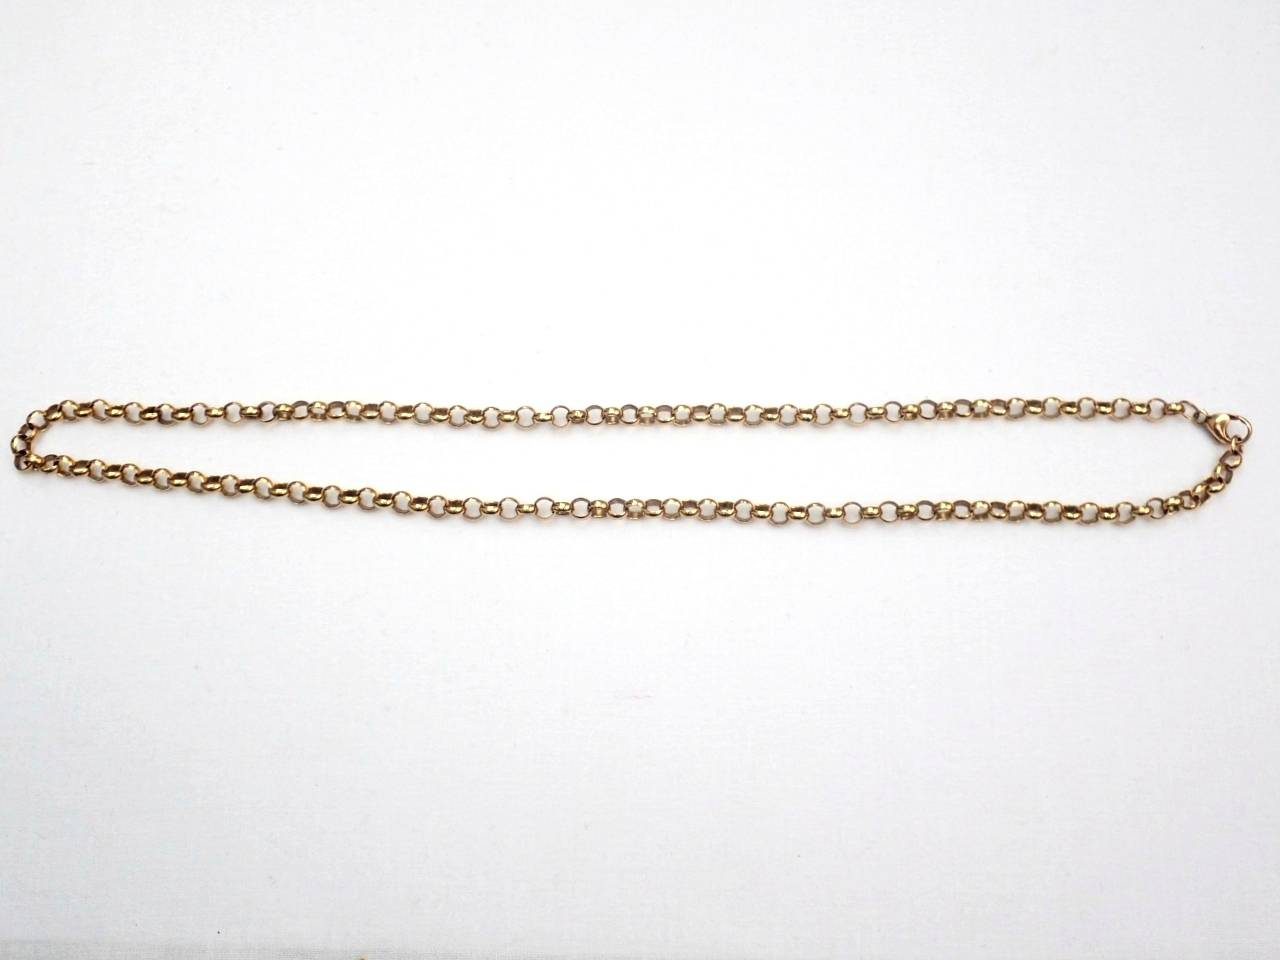 AA000979 - 9ct Yellow Gold Belcher Rolo chain 16.3gms 19 Inch #052